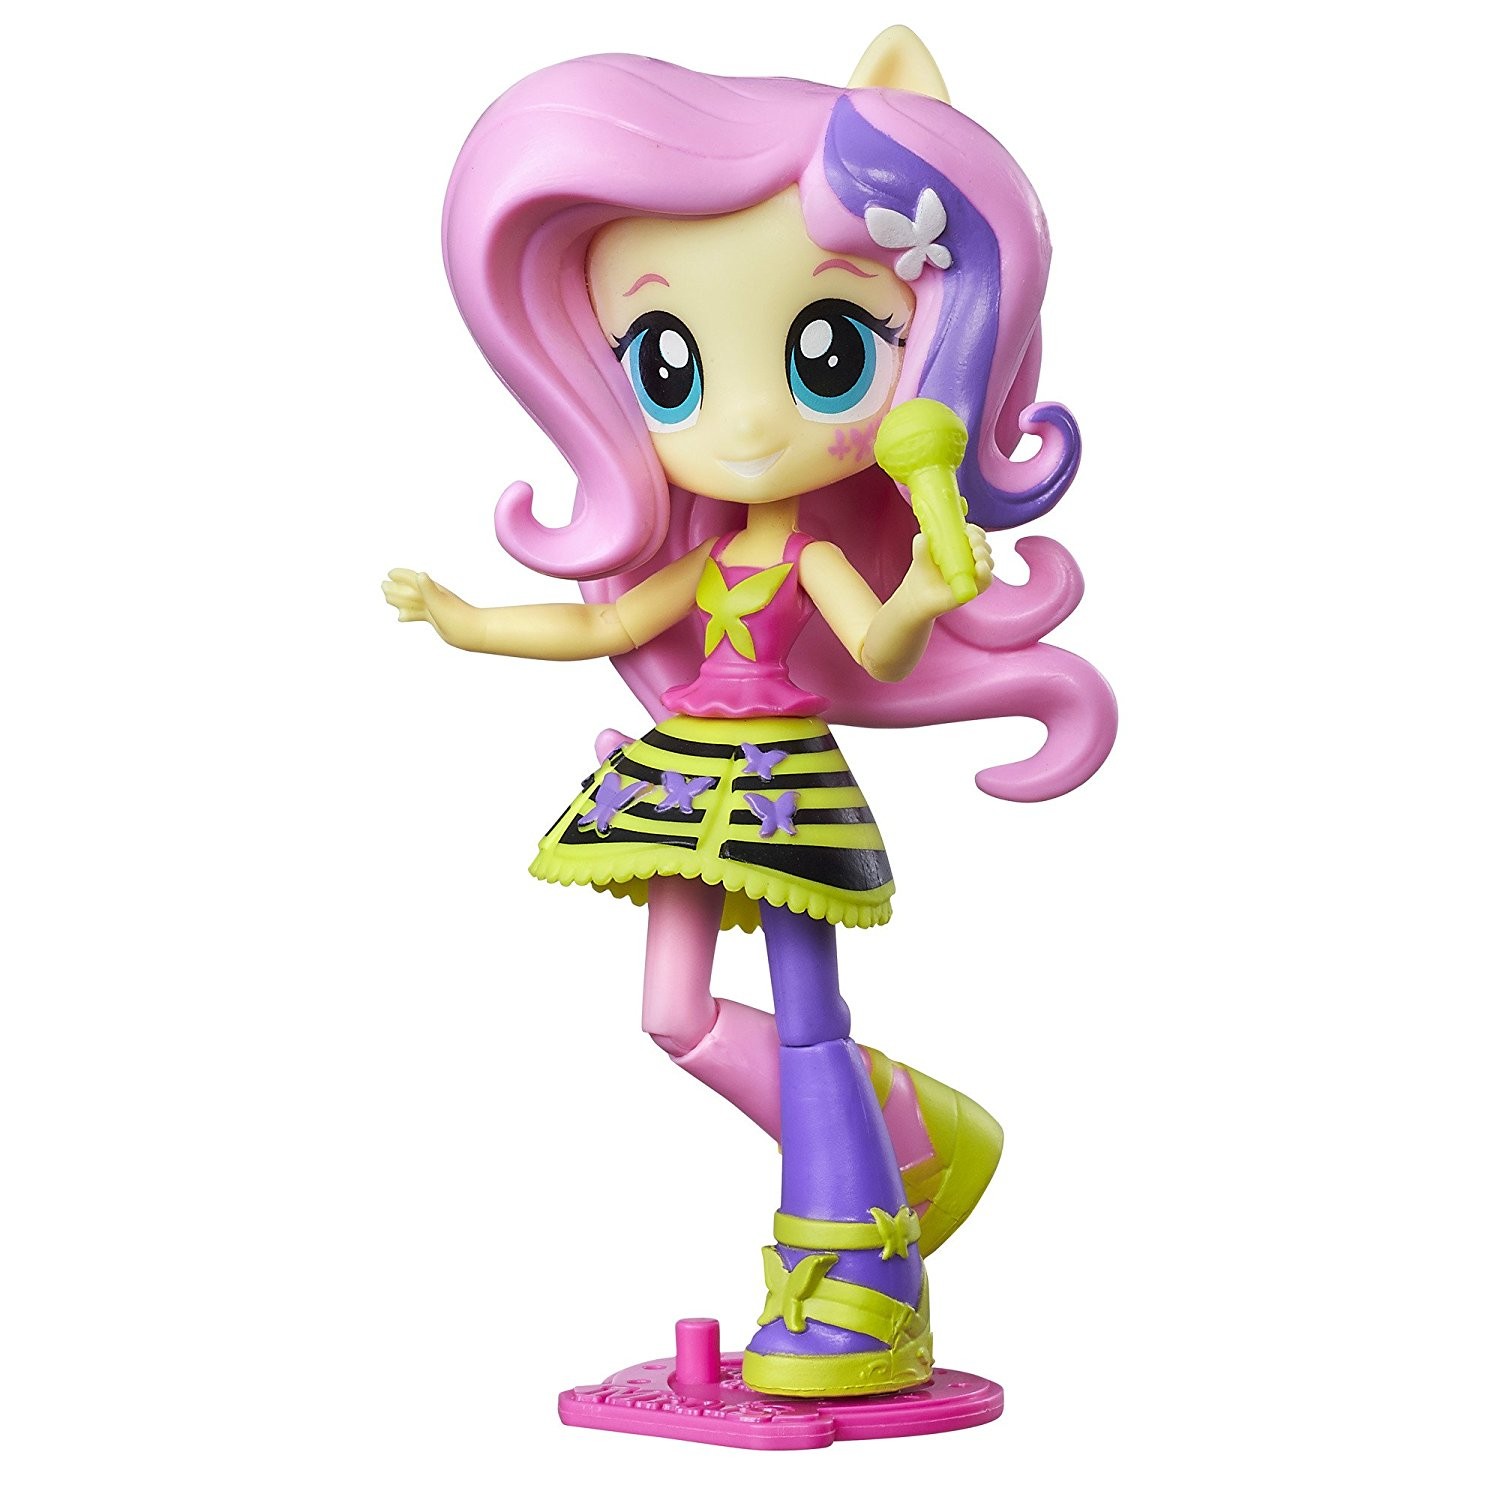 EG Rockin Fluttershy Doll..., By My Little Pony Ship from US